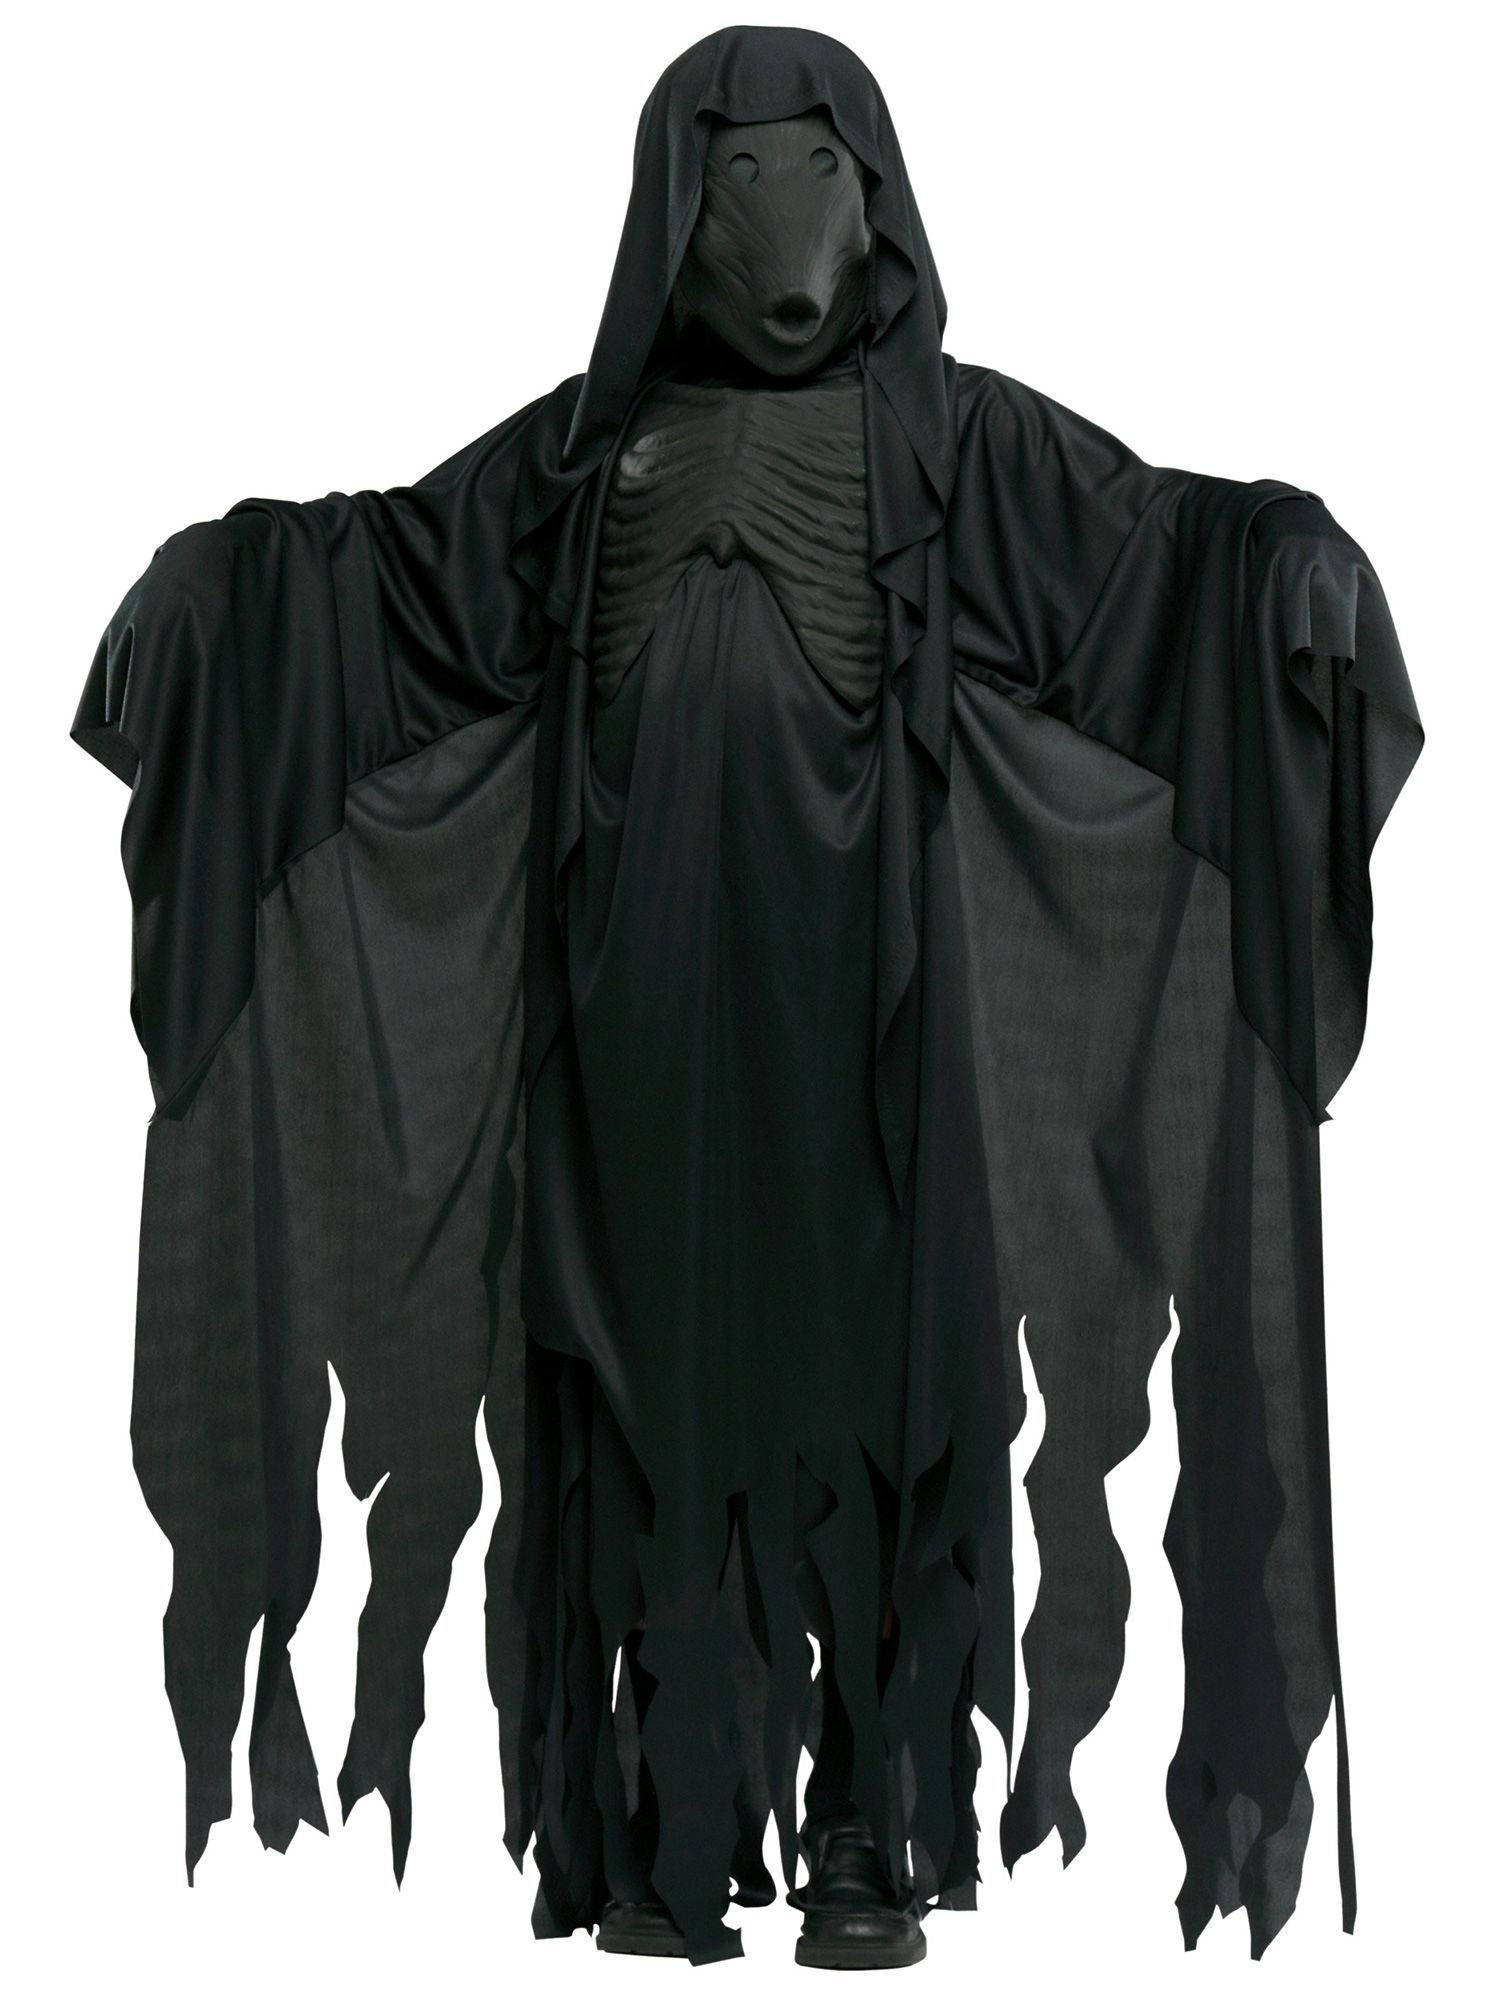 Dementor Child Costume - Small